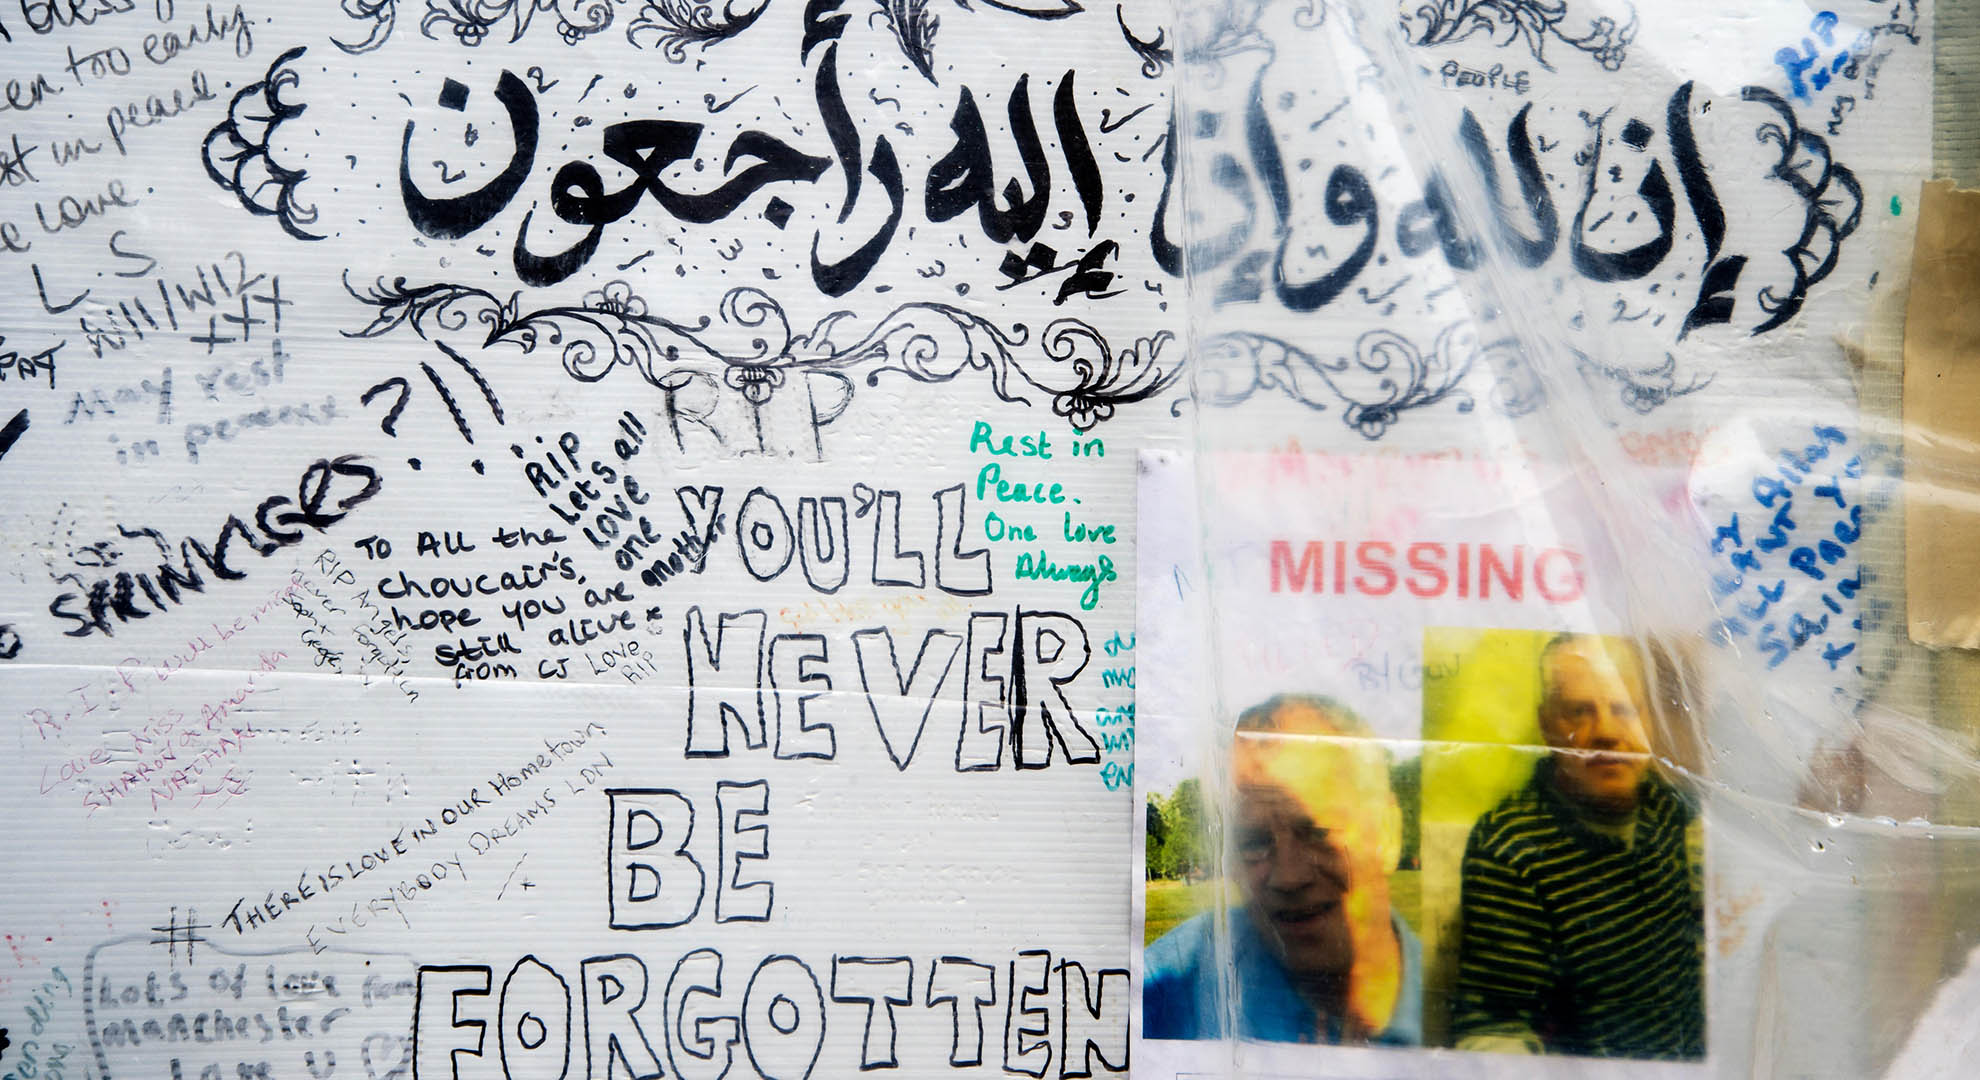 Memorial at the Grenfell Tower site